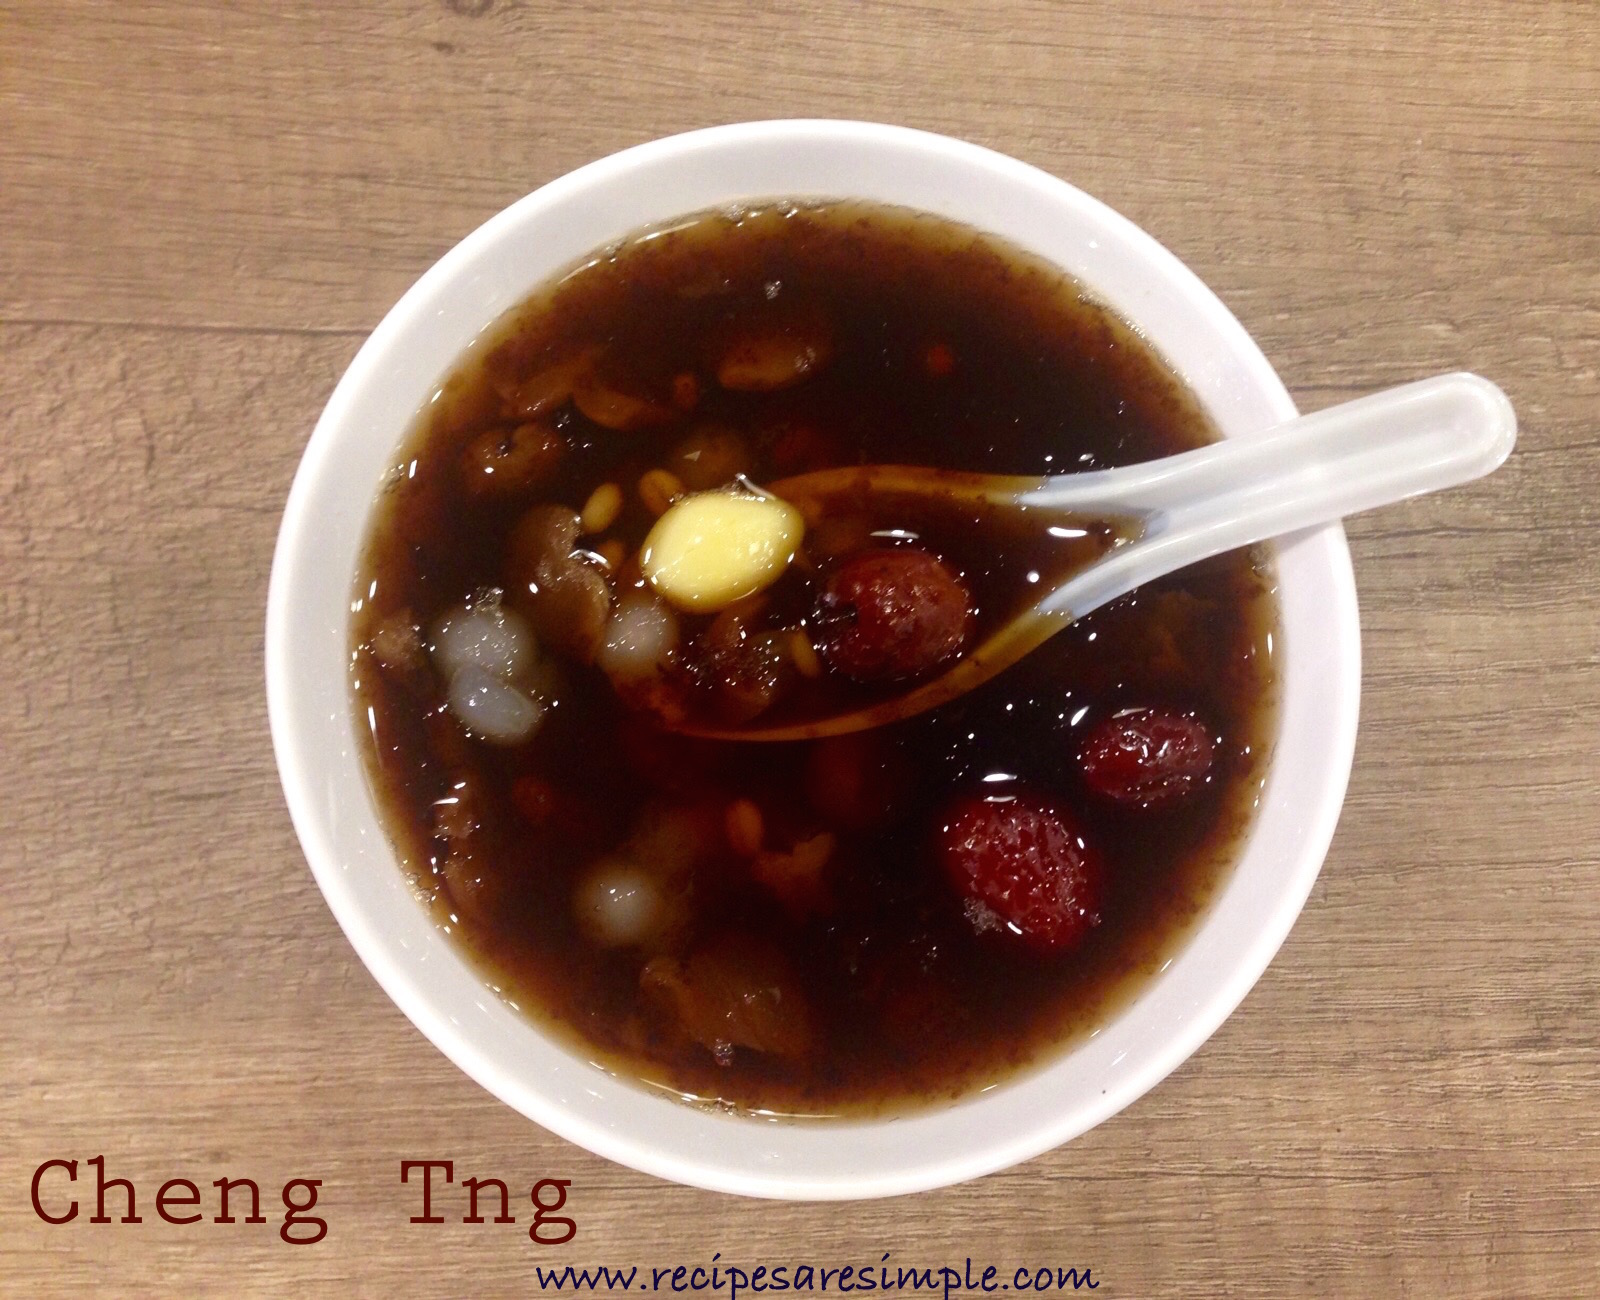 cheng tng1 Cheng Tng Recipe Healthy Asian Dessert!